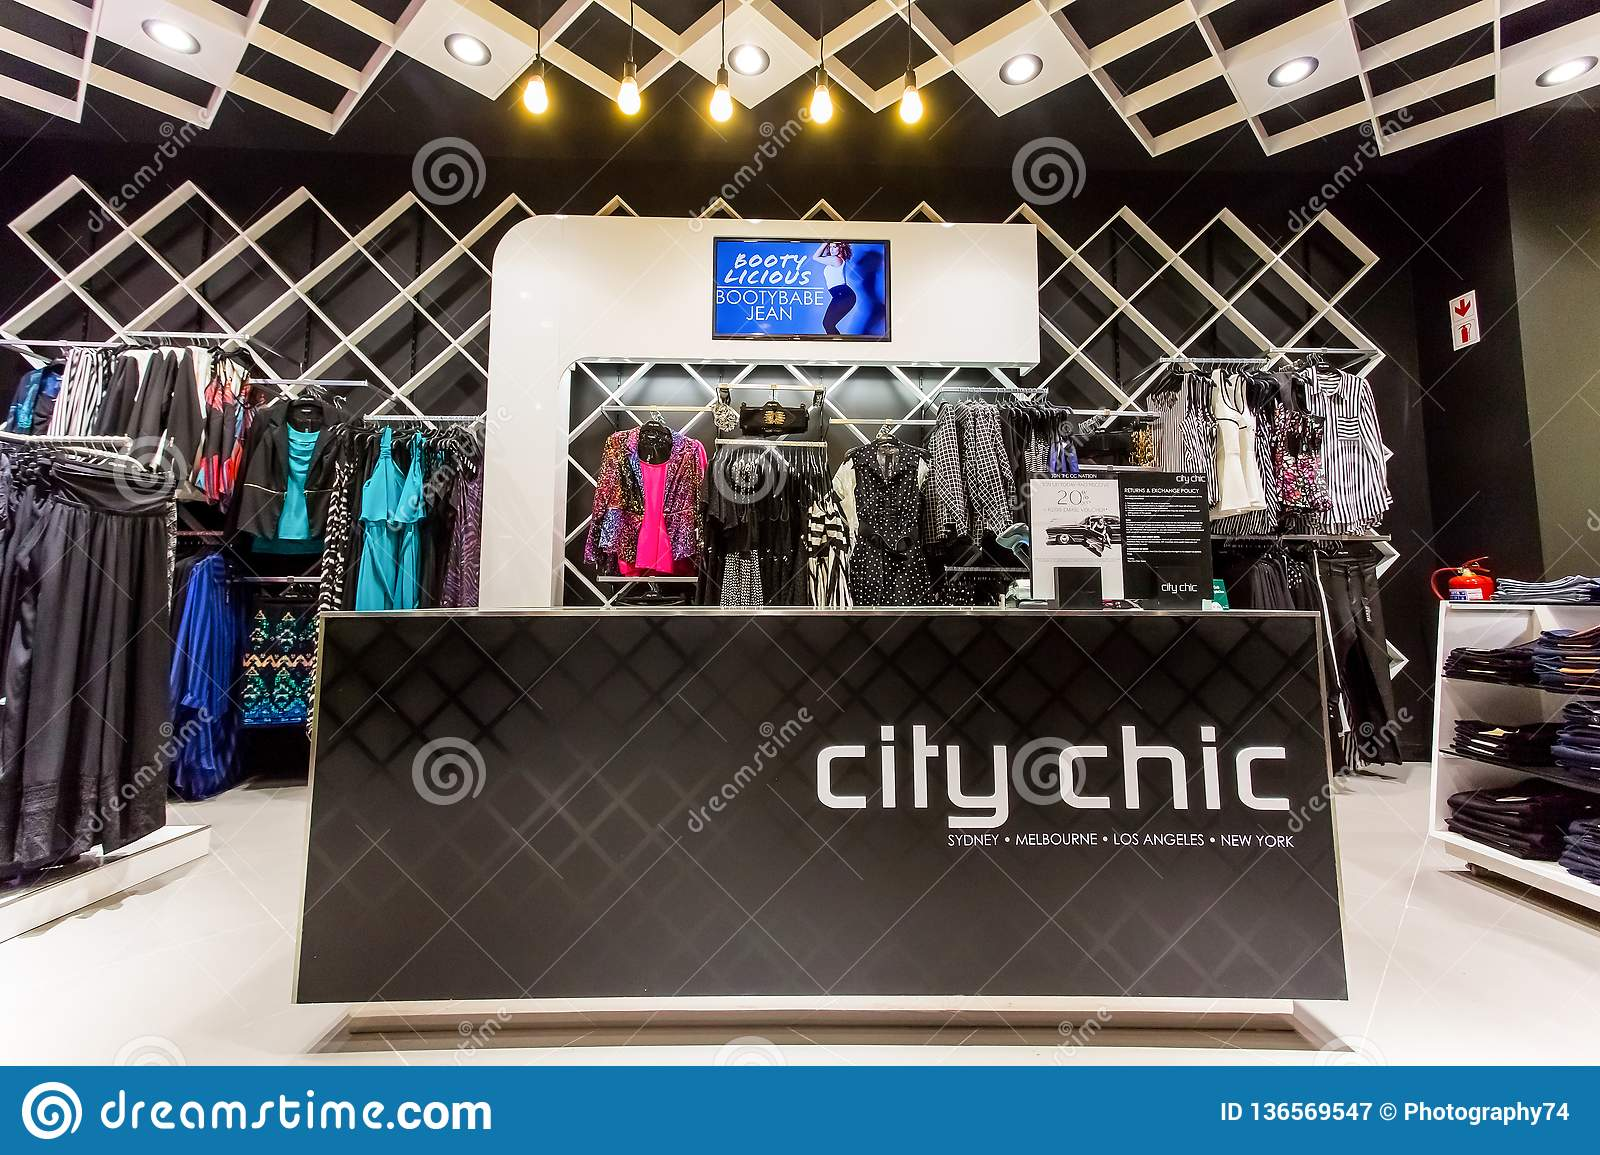 Plus Size Clothing Store City Chic At Sandton City Editorial